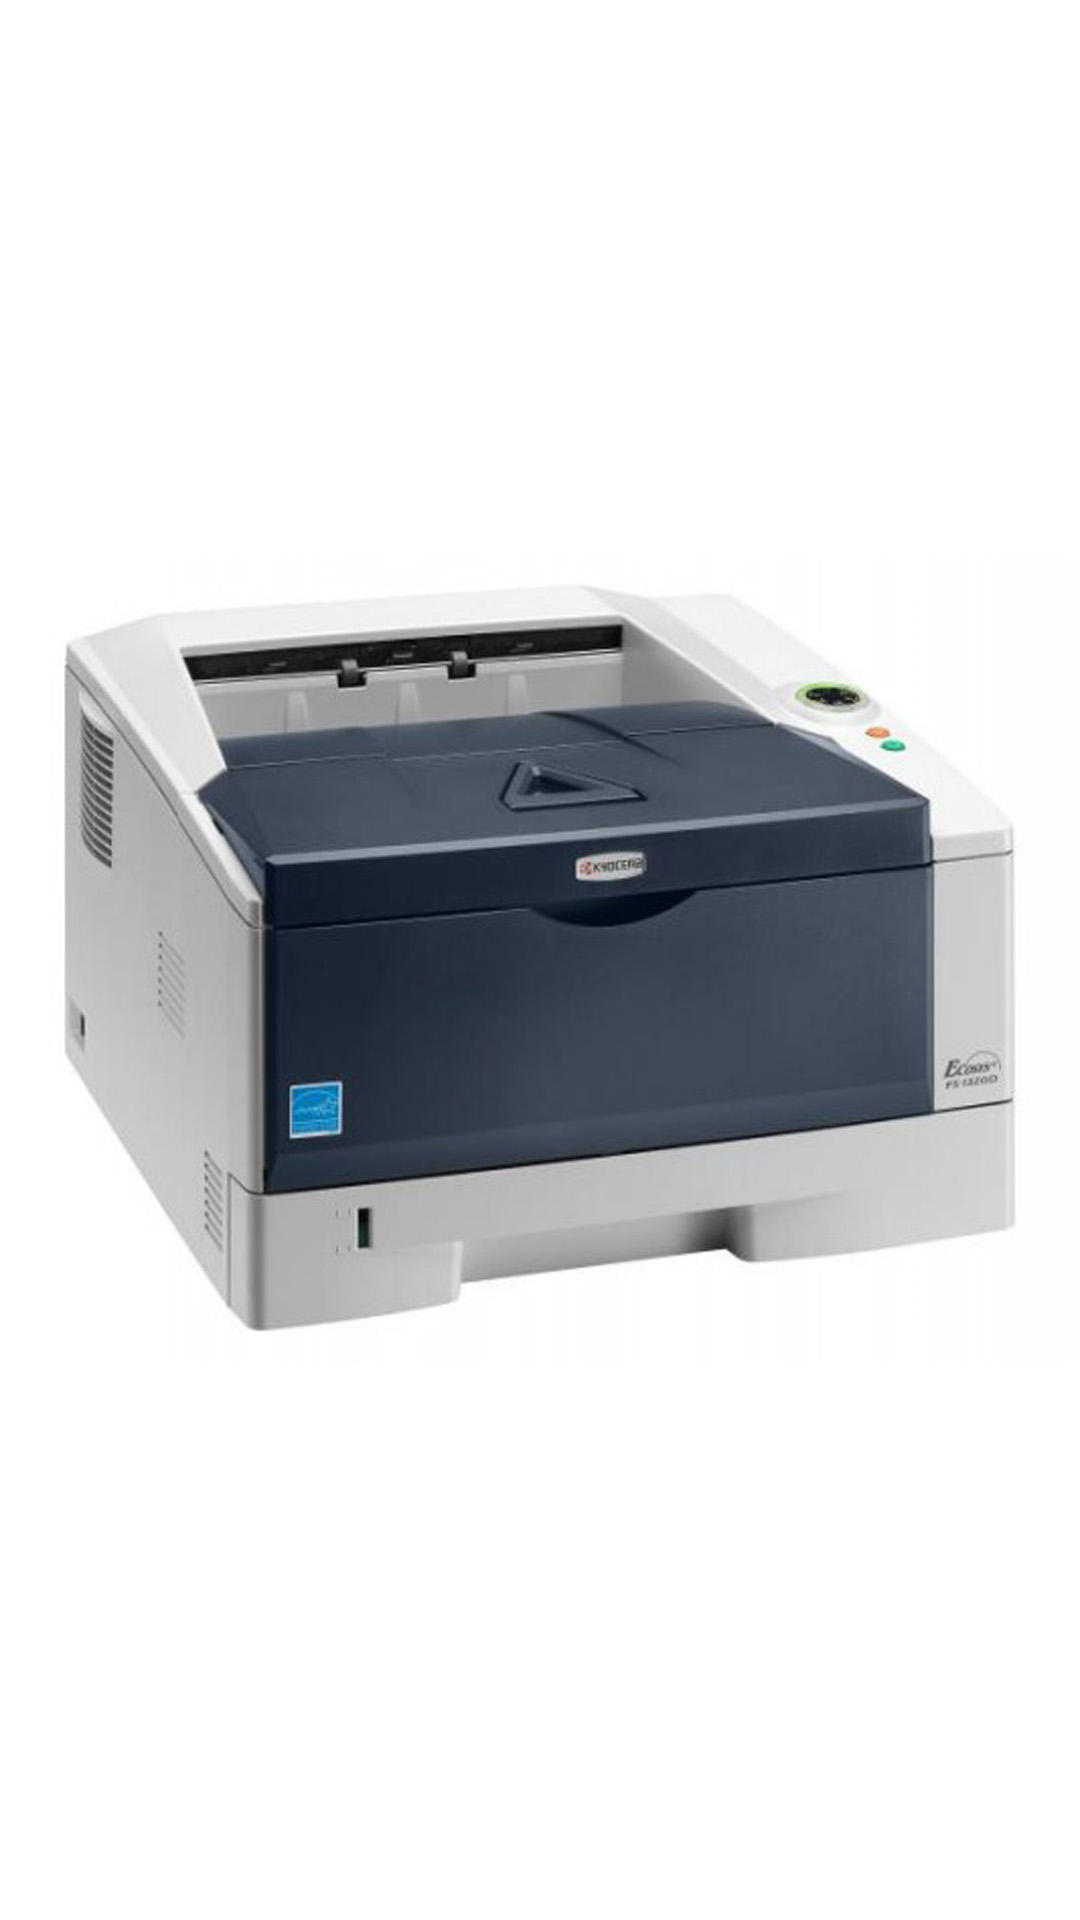 Kyocera FS-1320D Single-Function Laser Printer